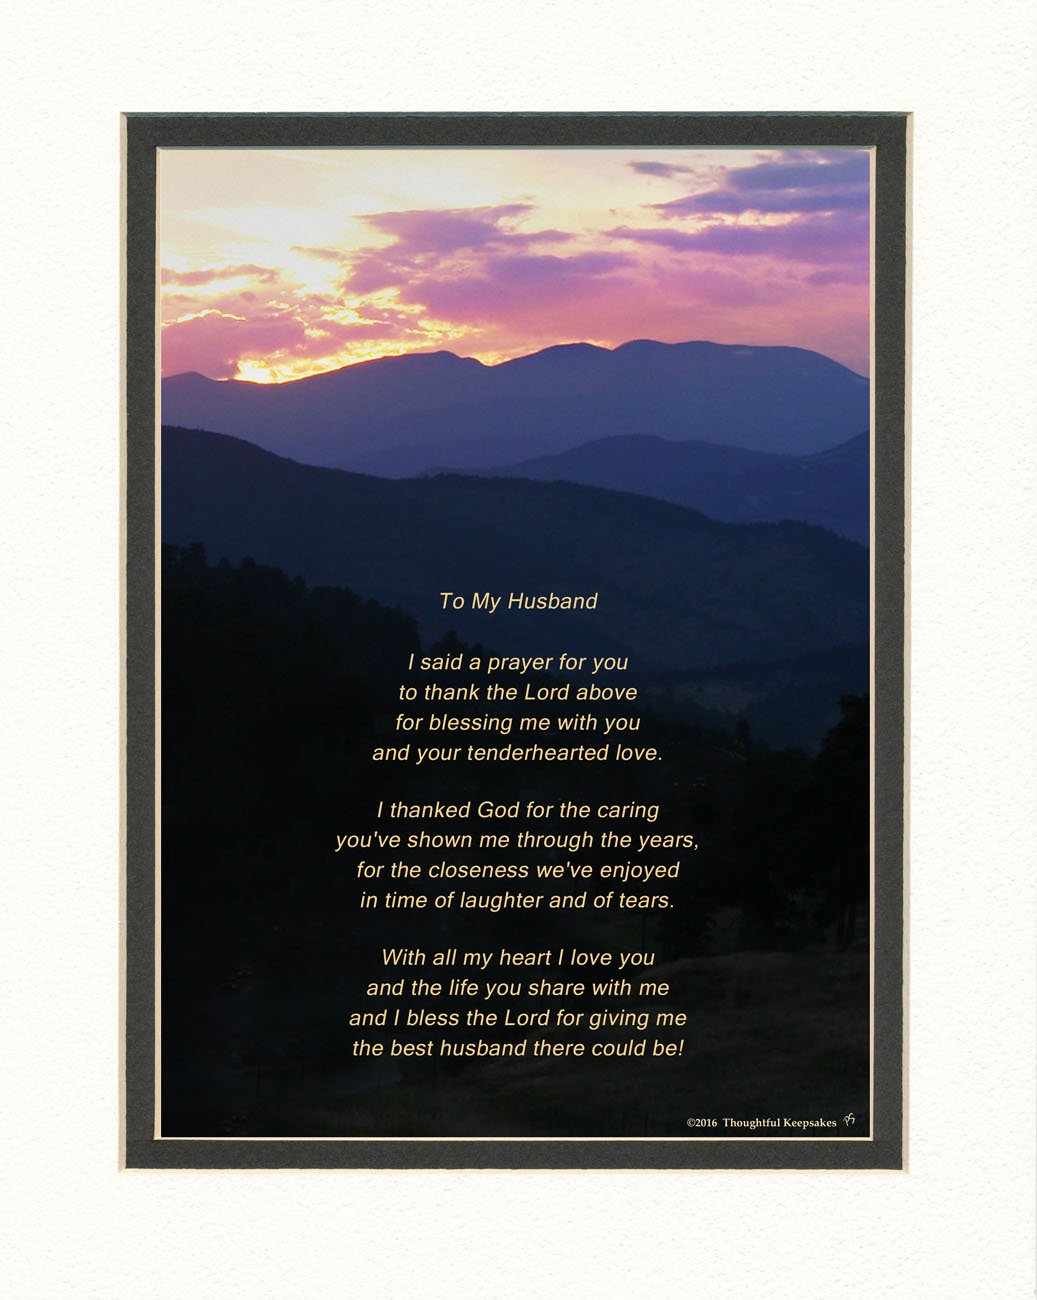 Husband Gift with Thank You Prayer for Best Husband Poem. Mts Sunset Photo, 8x10 Double Matted. Special Husband Gift for Anniversary, Birthday, Christmas